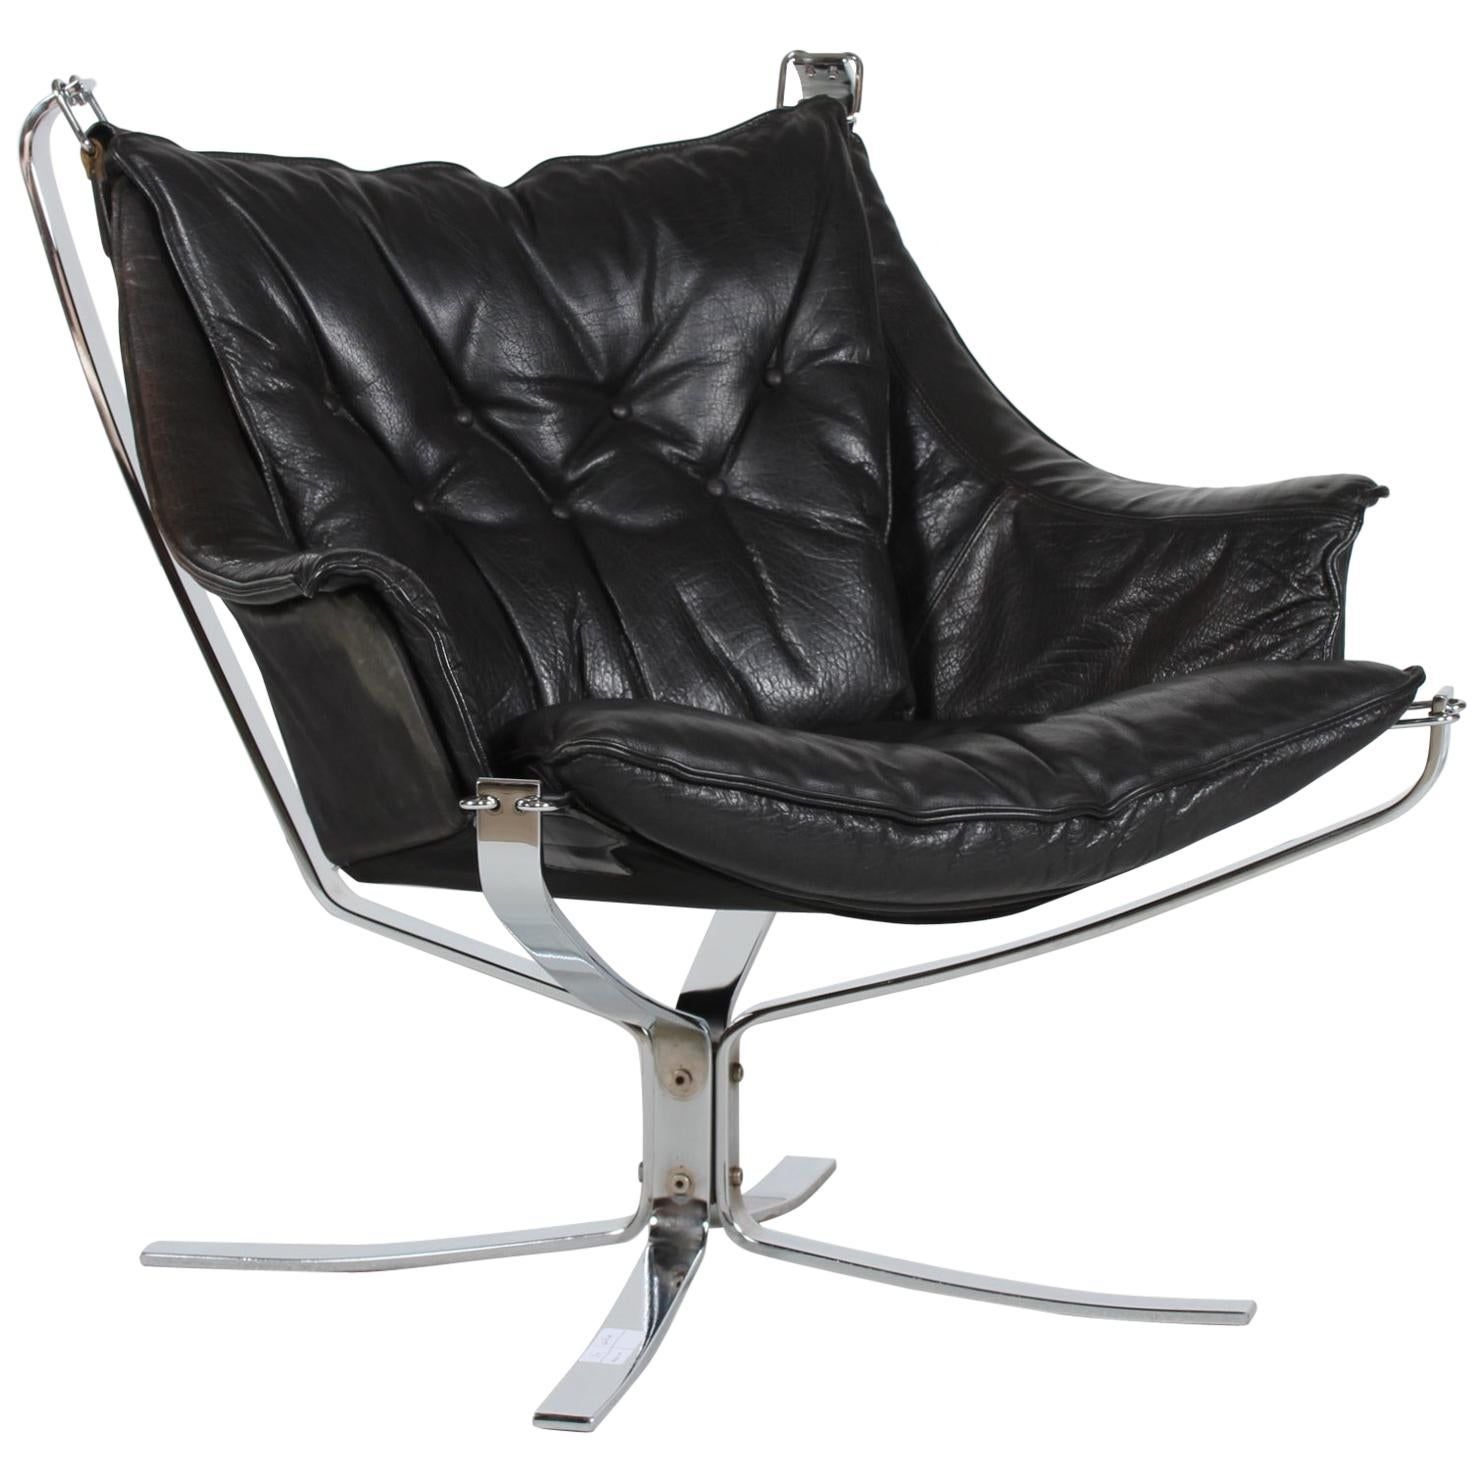 Midcentury Falcon Armchair by Sigurd Ressell with Black Leather and Chrome Base